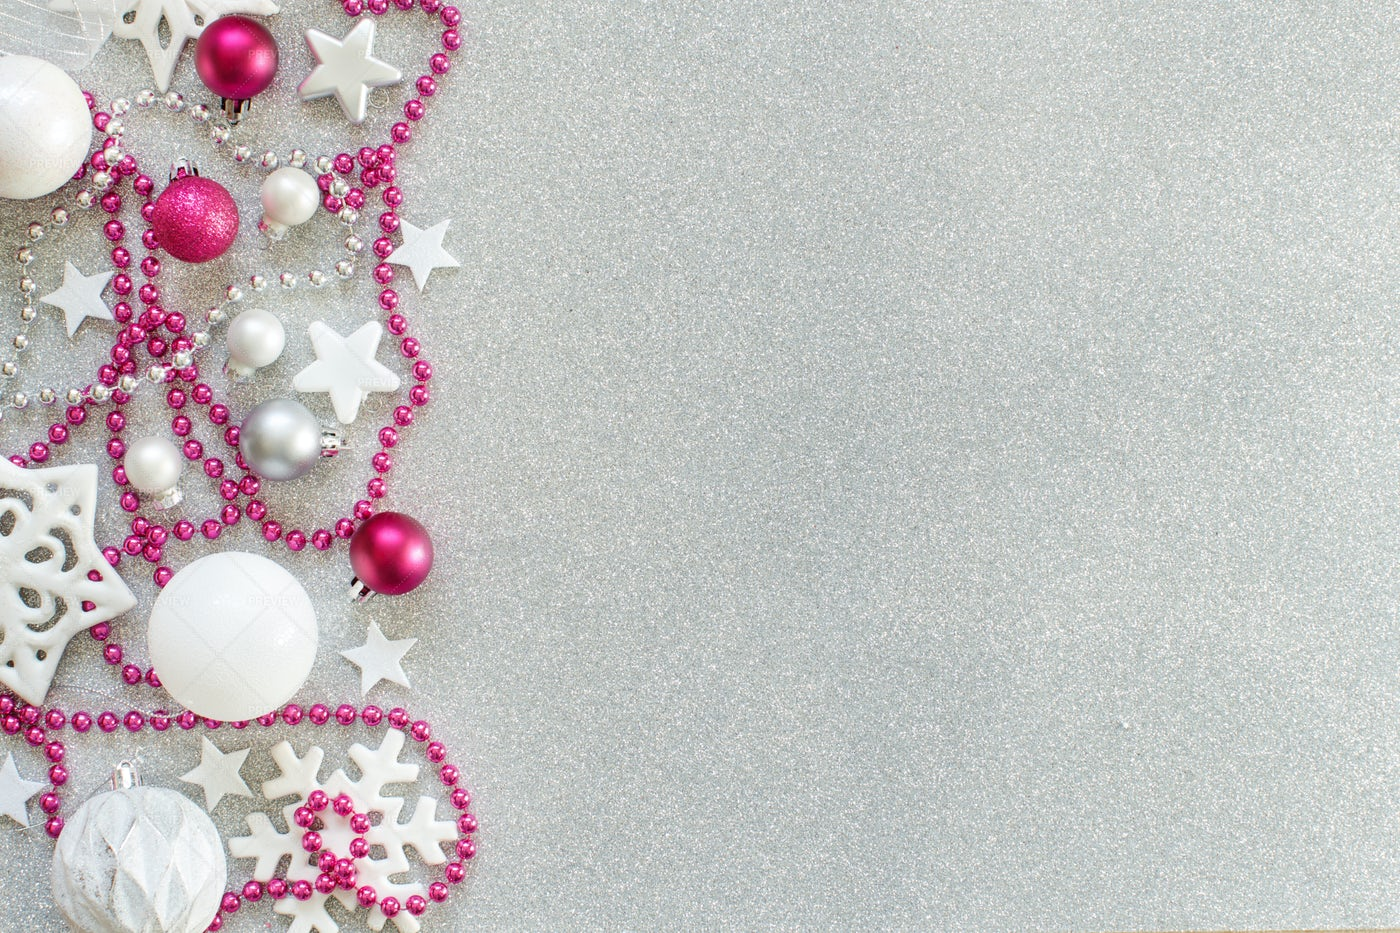 White And Pink Decorations: Stock Photos